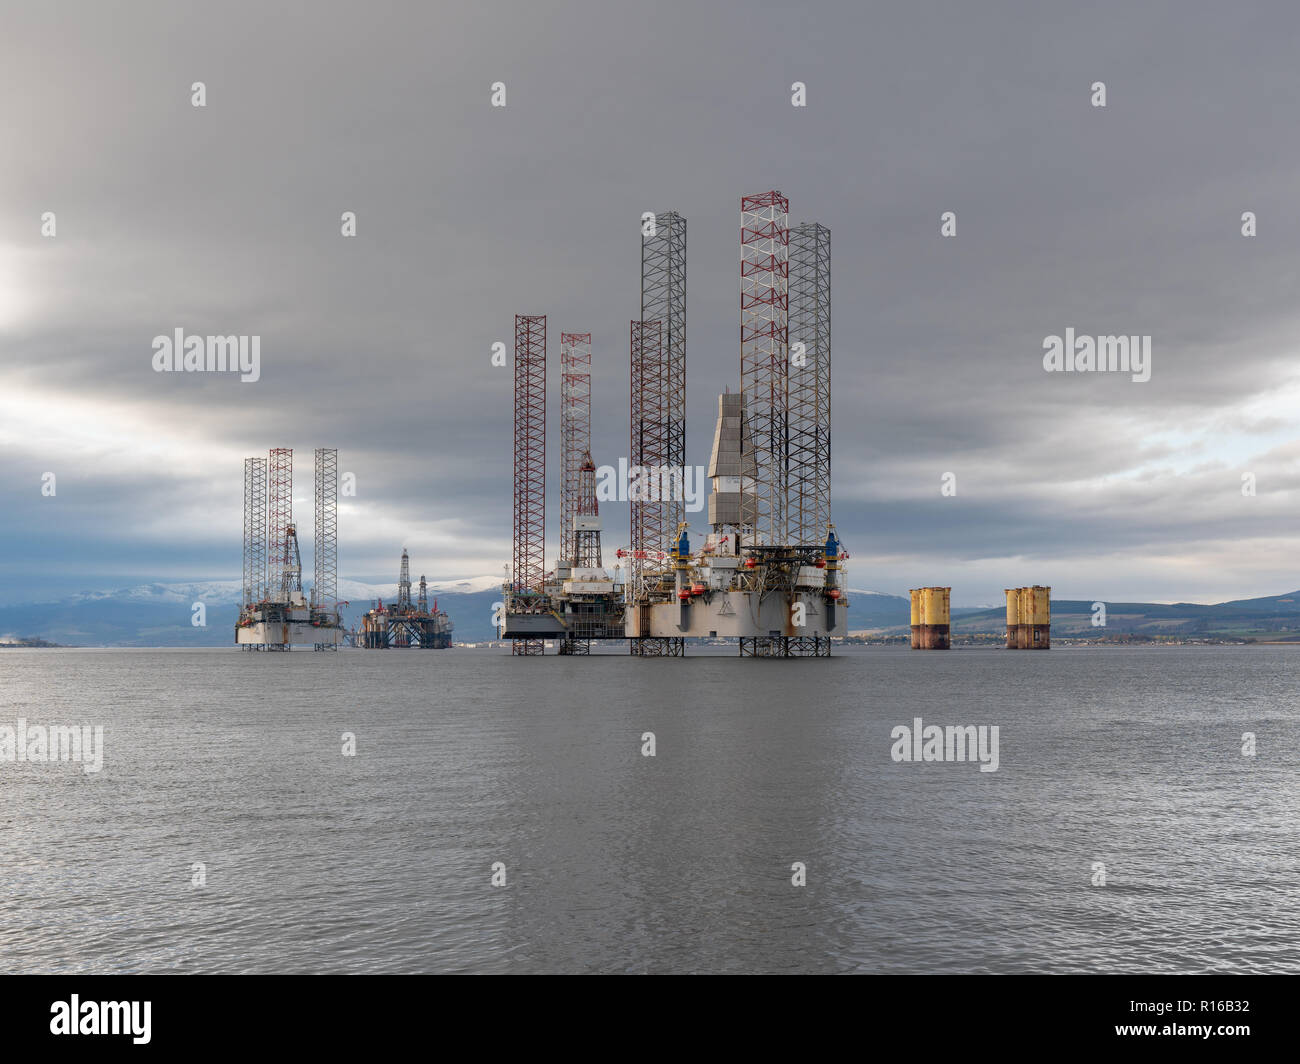 This is a scene of the Oil Rigs berthed within Cromarty Firth on Wednesday 31 October 2018. Photographed - FREELANCE - by JASPERIMAGE ©. Stock Photo